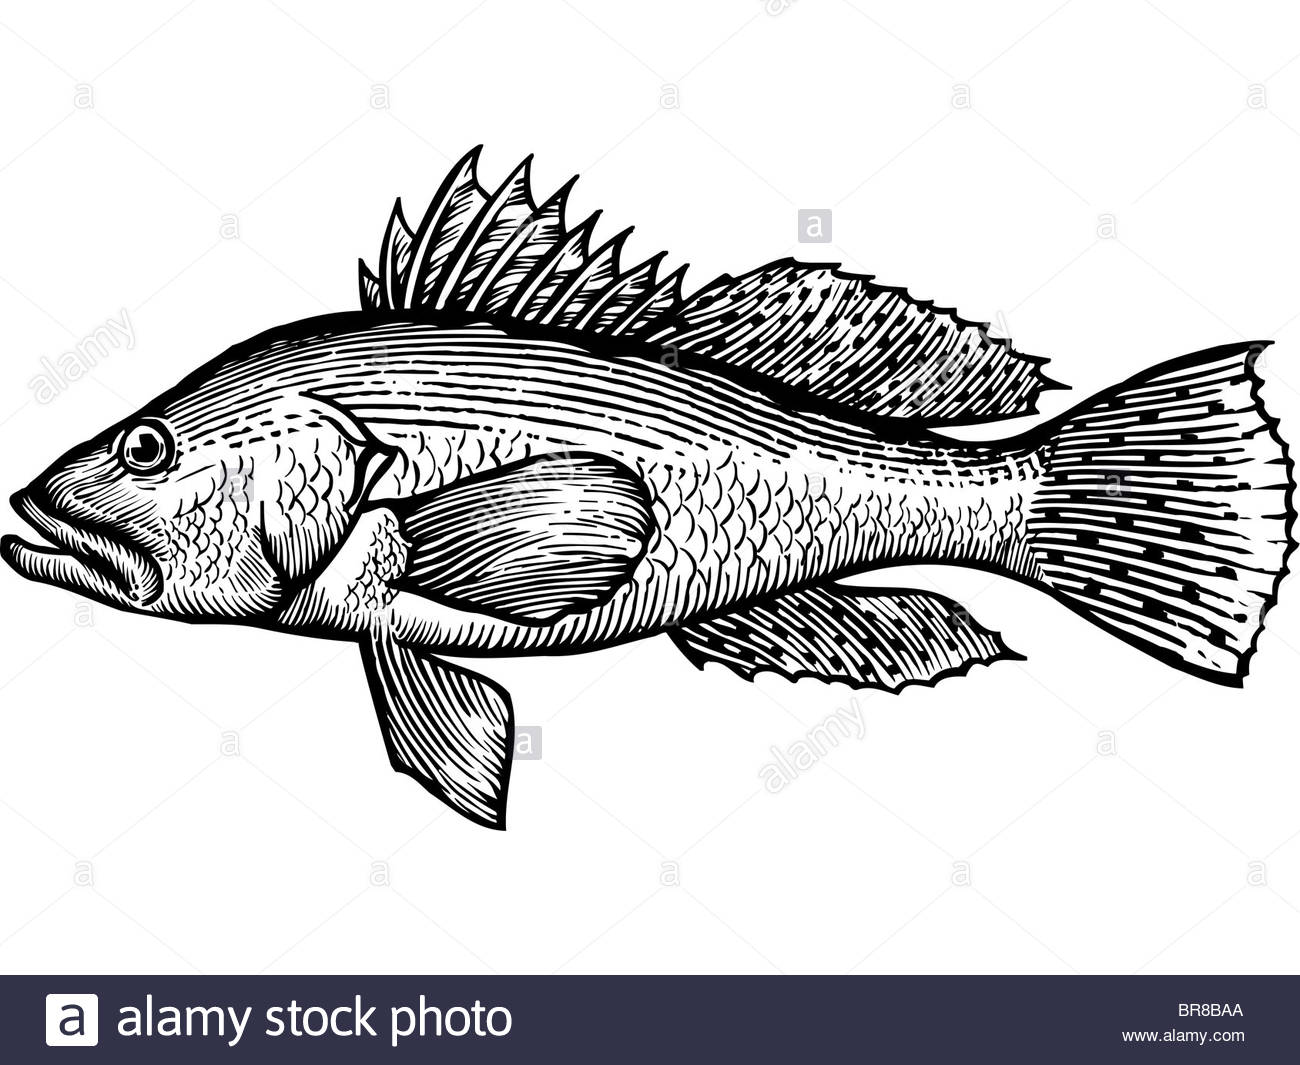 1300x1065 A Black And White Drawing Of A Sea Bass Stock Photo 31531986